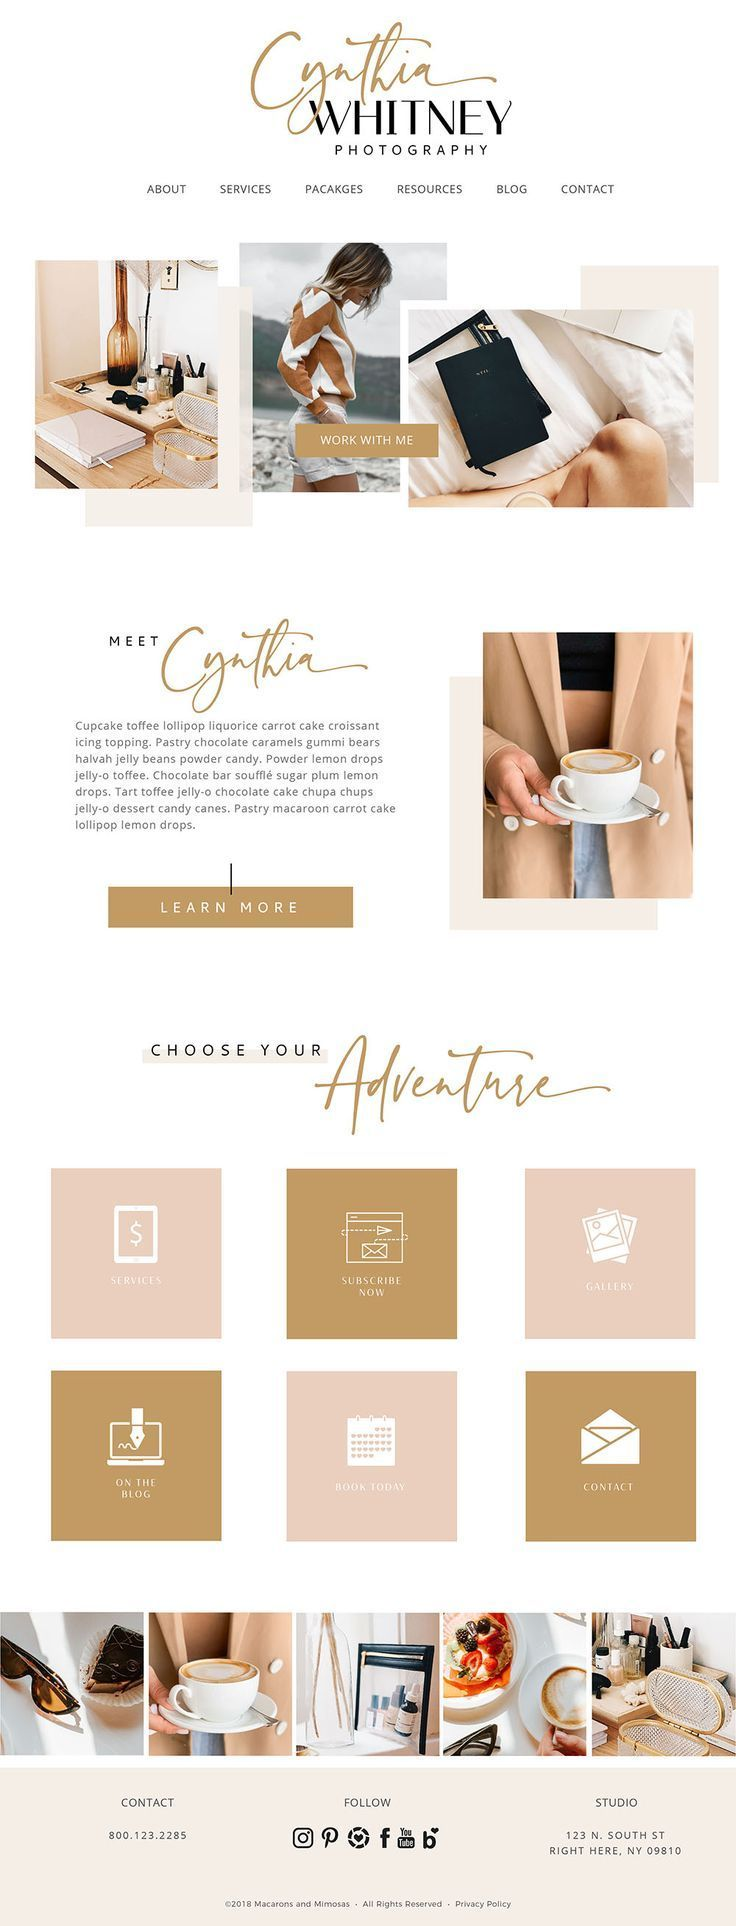 Cynthia // Websites, Blog, Social Media Bundle • WordPress Responsive - web design